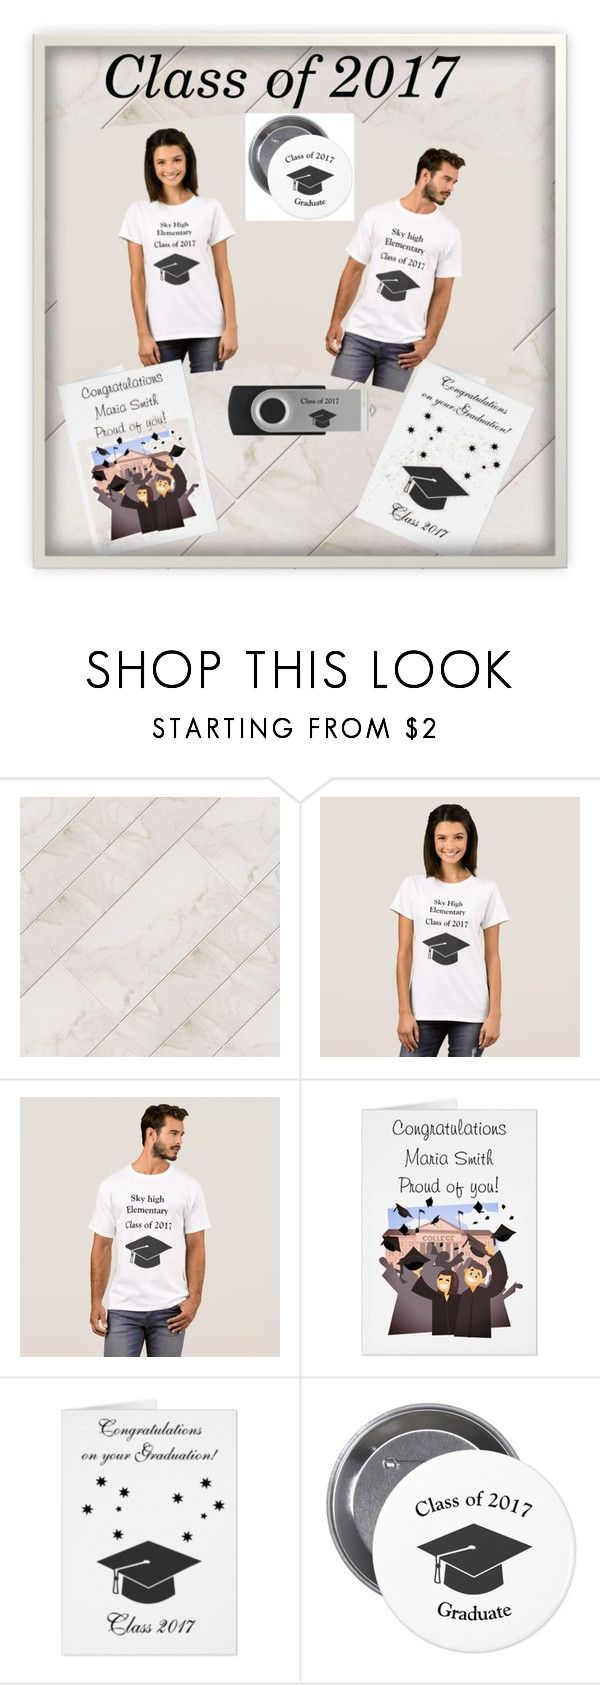 """""""Class of 2017"""" by ditsydot19 ❤ liked on Polyvore featuring interior, interiors, interior design, home, home decor, interior decorating, zazzle and ditsydot19"""